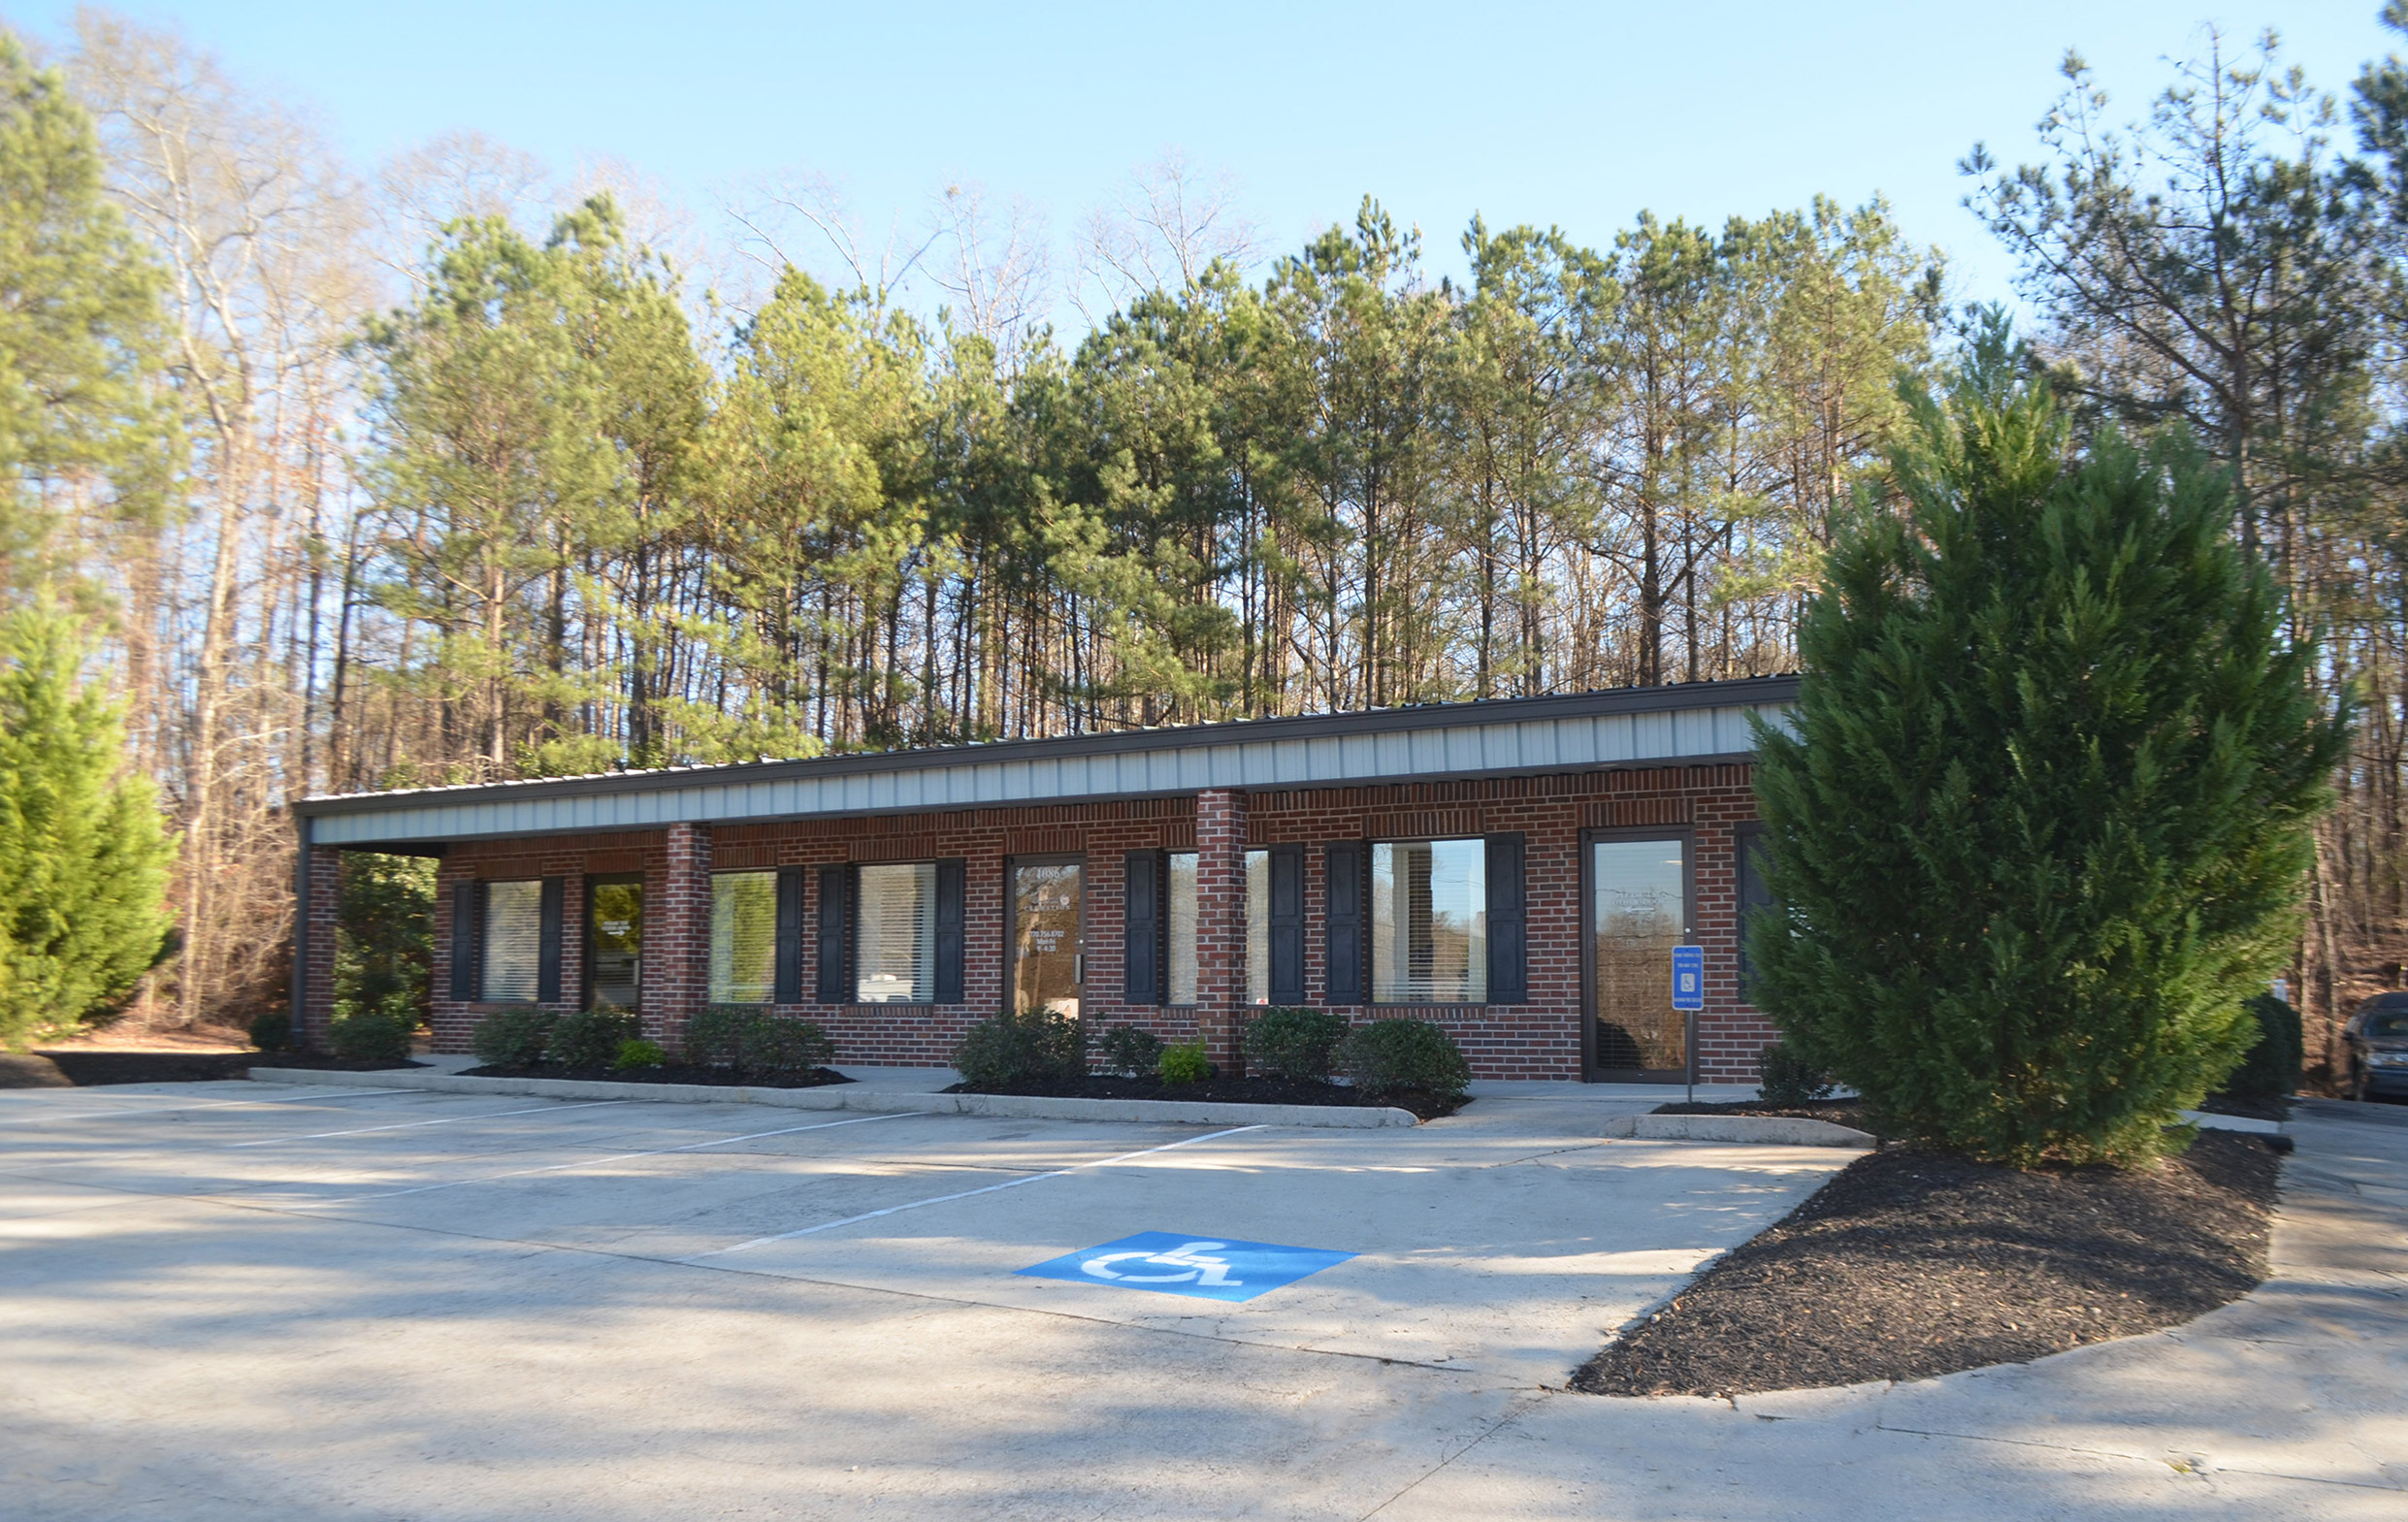 Georgia Cremation building in Fayetteville, GA